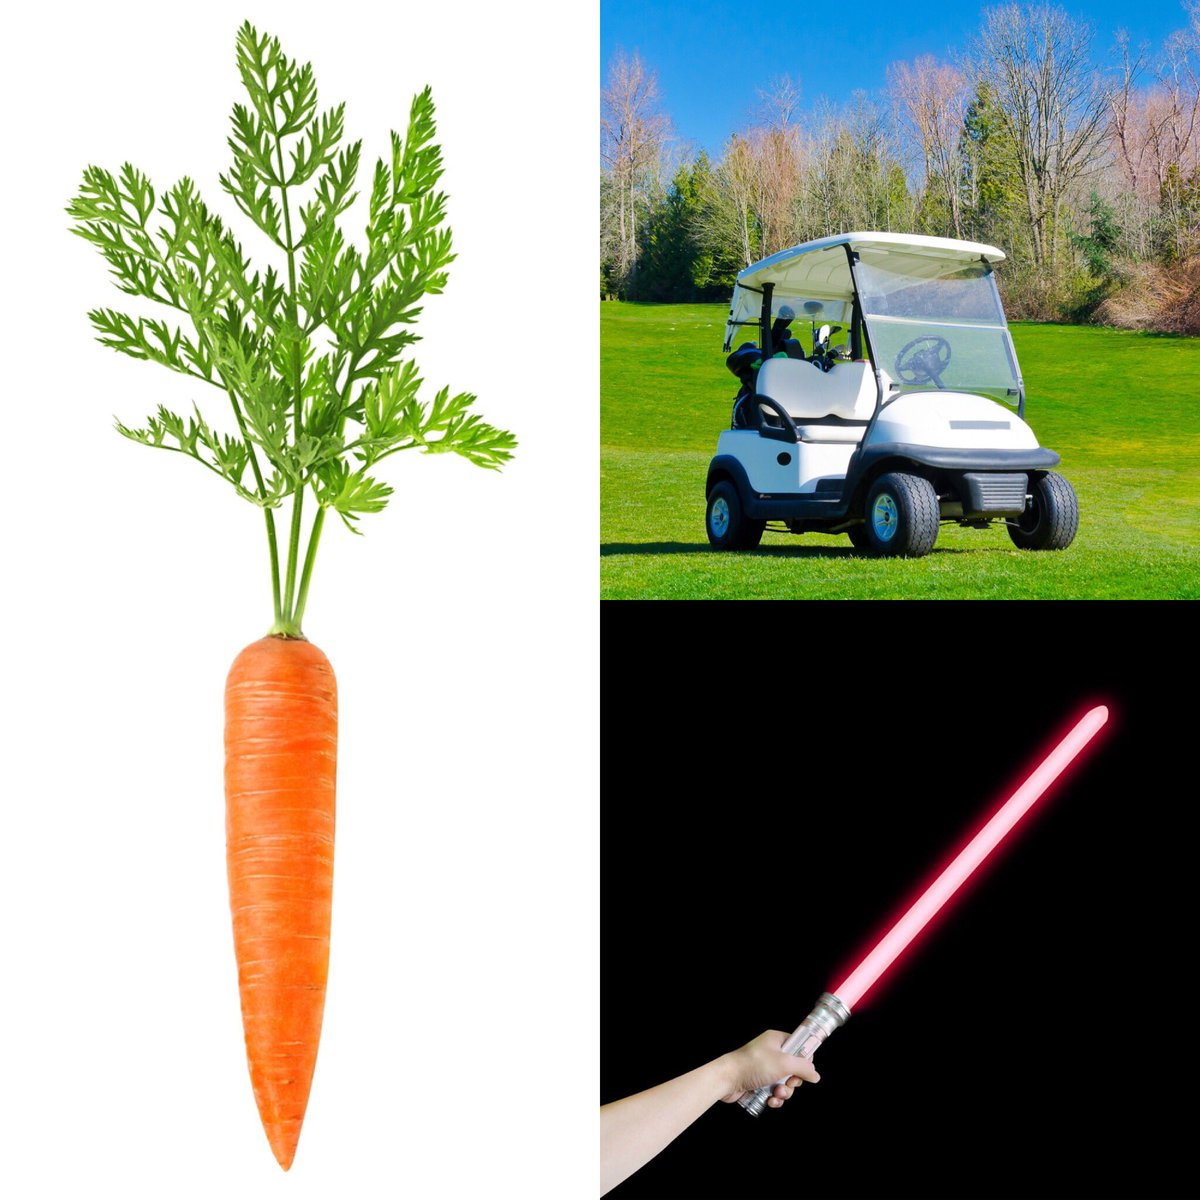 What does a carrot, light saber & a golf cart have in common? I'm talking about it this wknd • #potentialchurch https://t.co/CwG4nKA79q